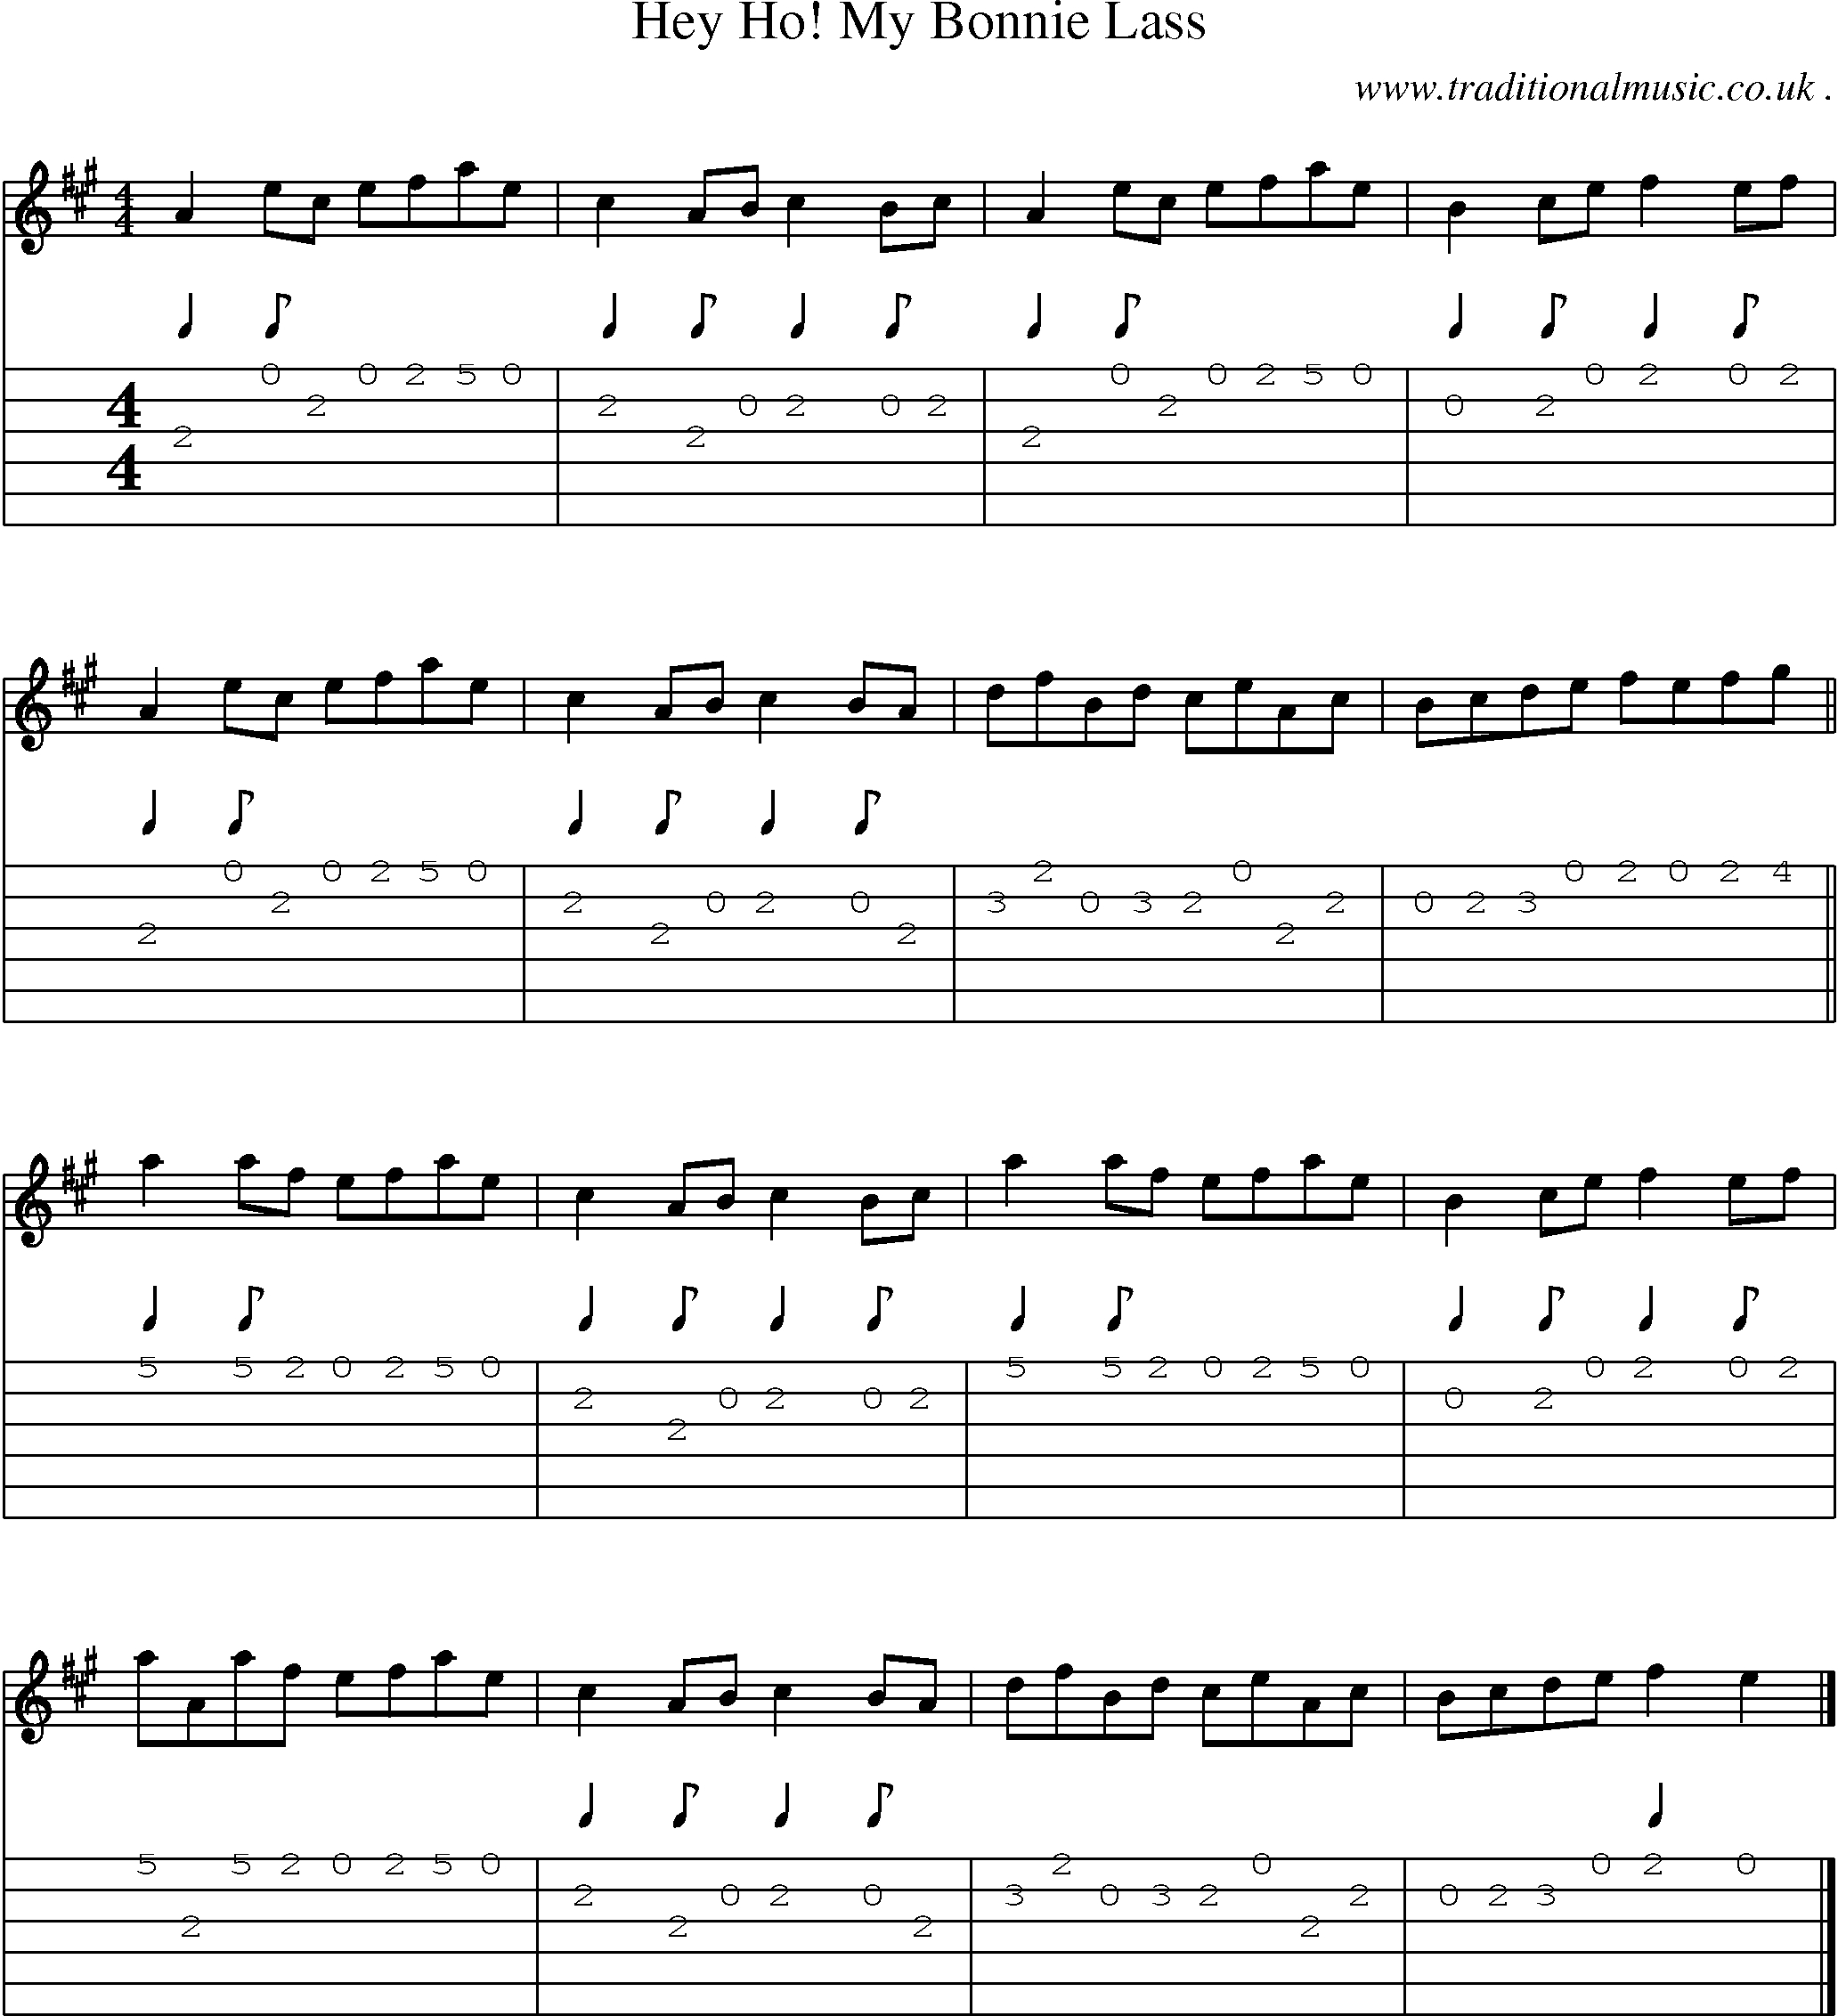 Ho Hey Chords Scottish Tune Sheetmusic Midi Mp3 Guitar Chords Tabs Hey Ho